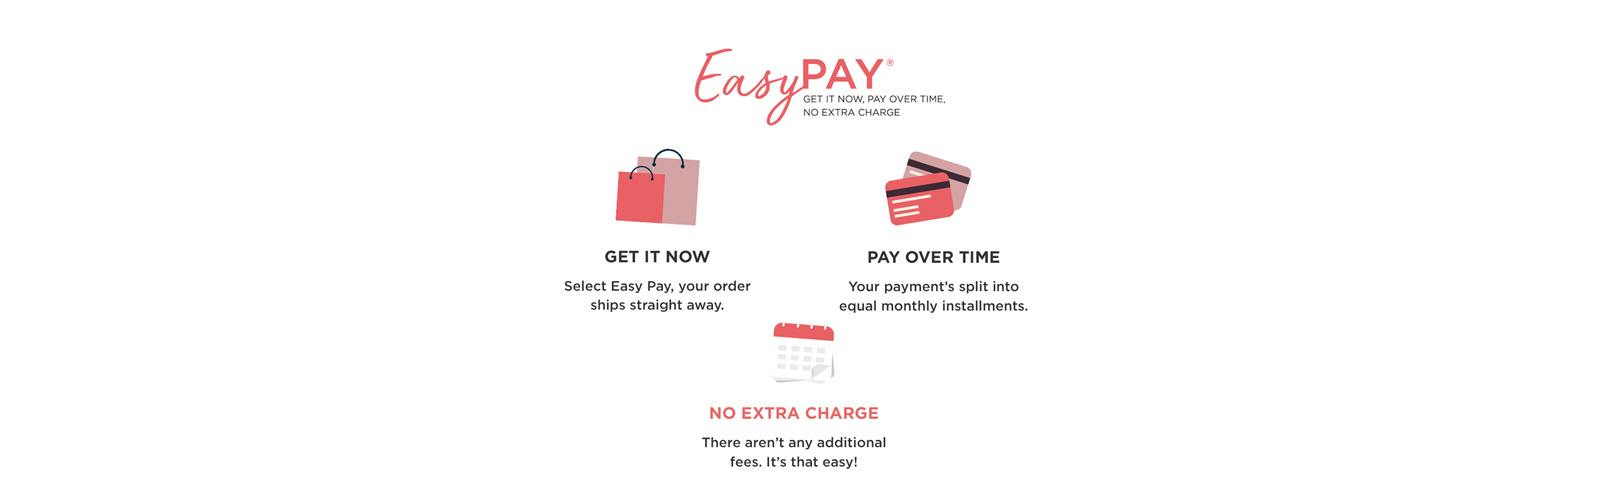 Easy Pay® - Get it now, pay over time, no extra charge - Get it now - Select Easy Pay, your order ships straight away. - Pay over time - Your payment's split into equal monthly installments. - No extra charge - There aren't any additional fees. It's that easy!